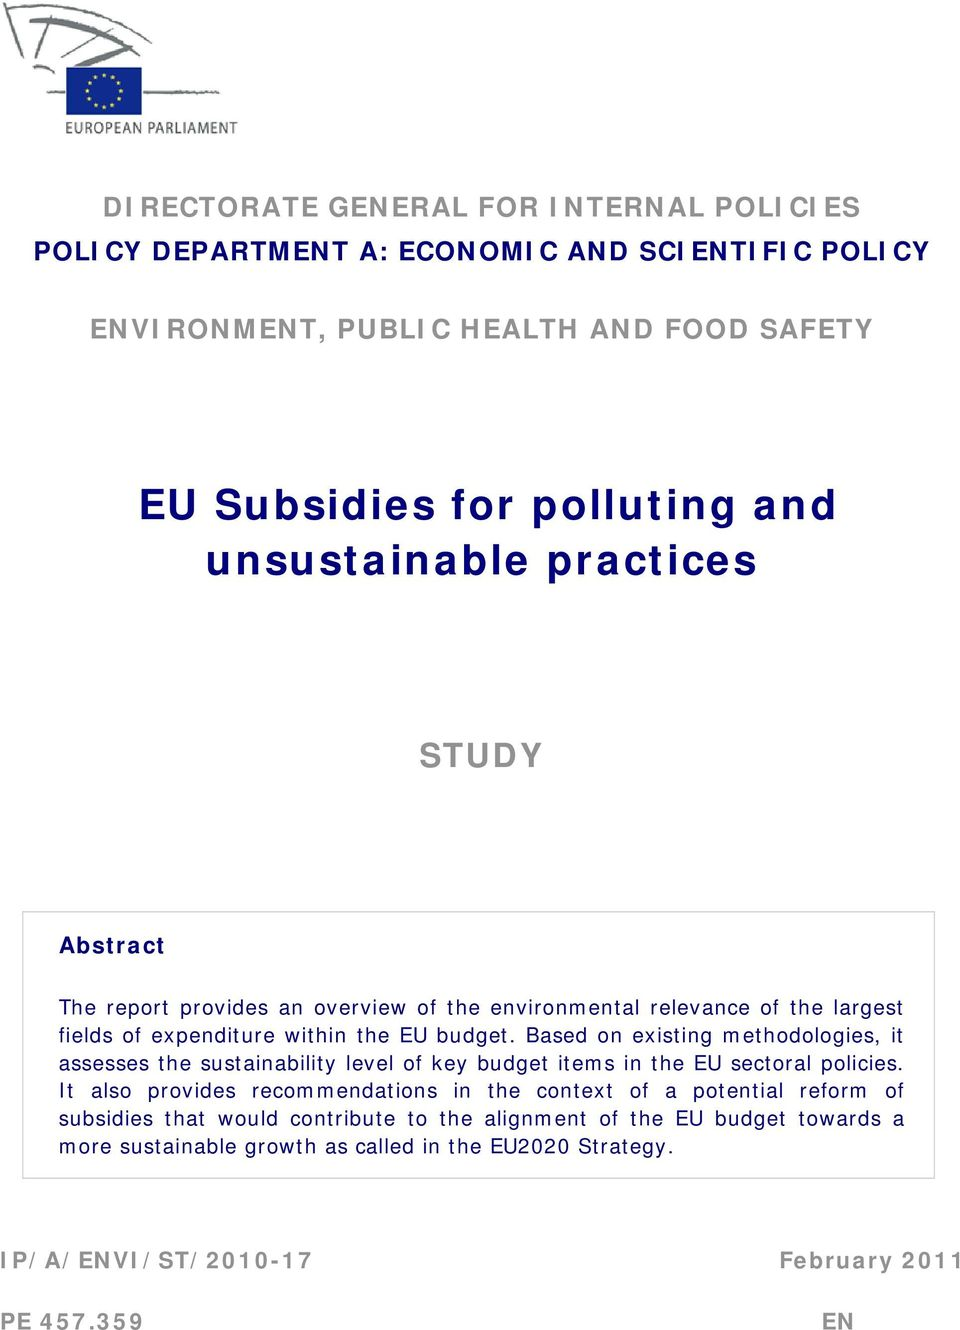 Based n existing methdlgies, it assesses the sustainability level f key budget items in the EU sectral plicies.